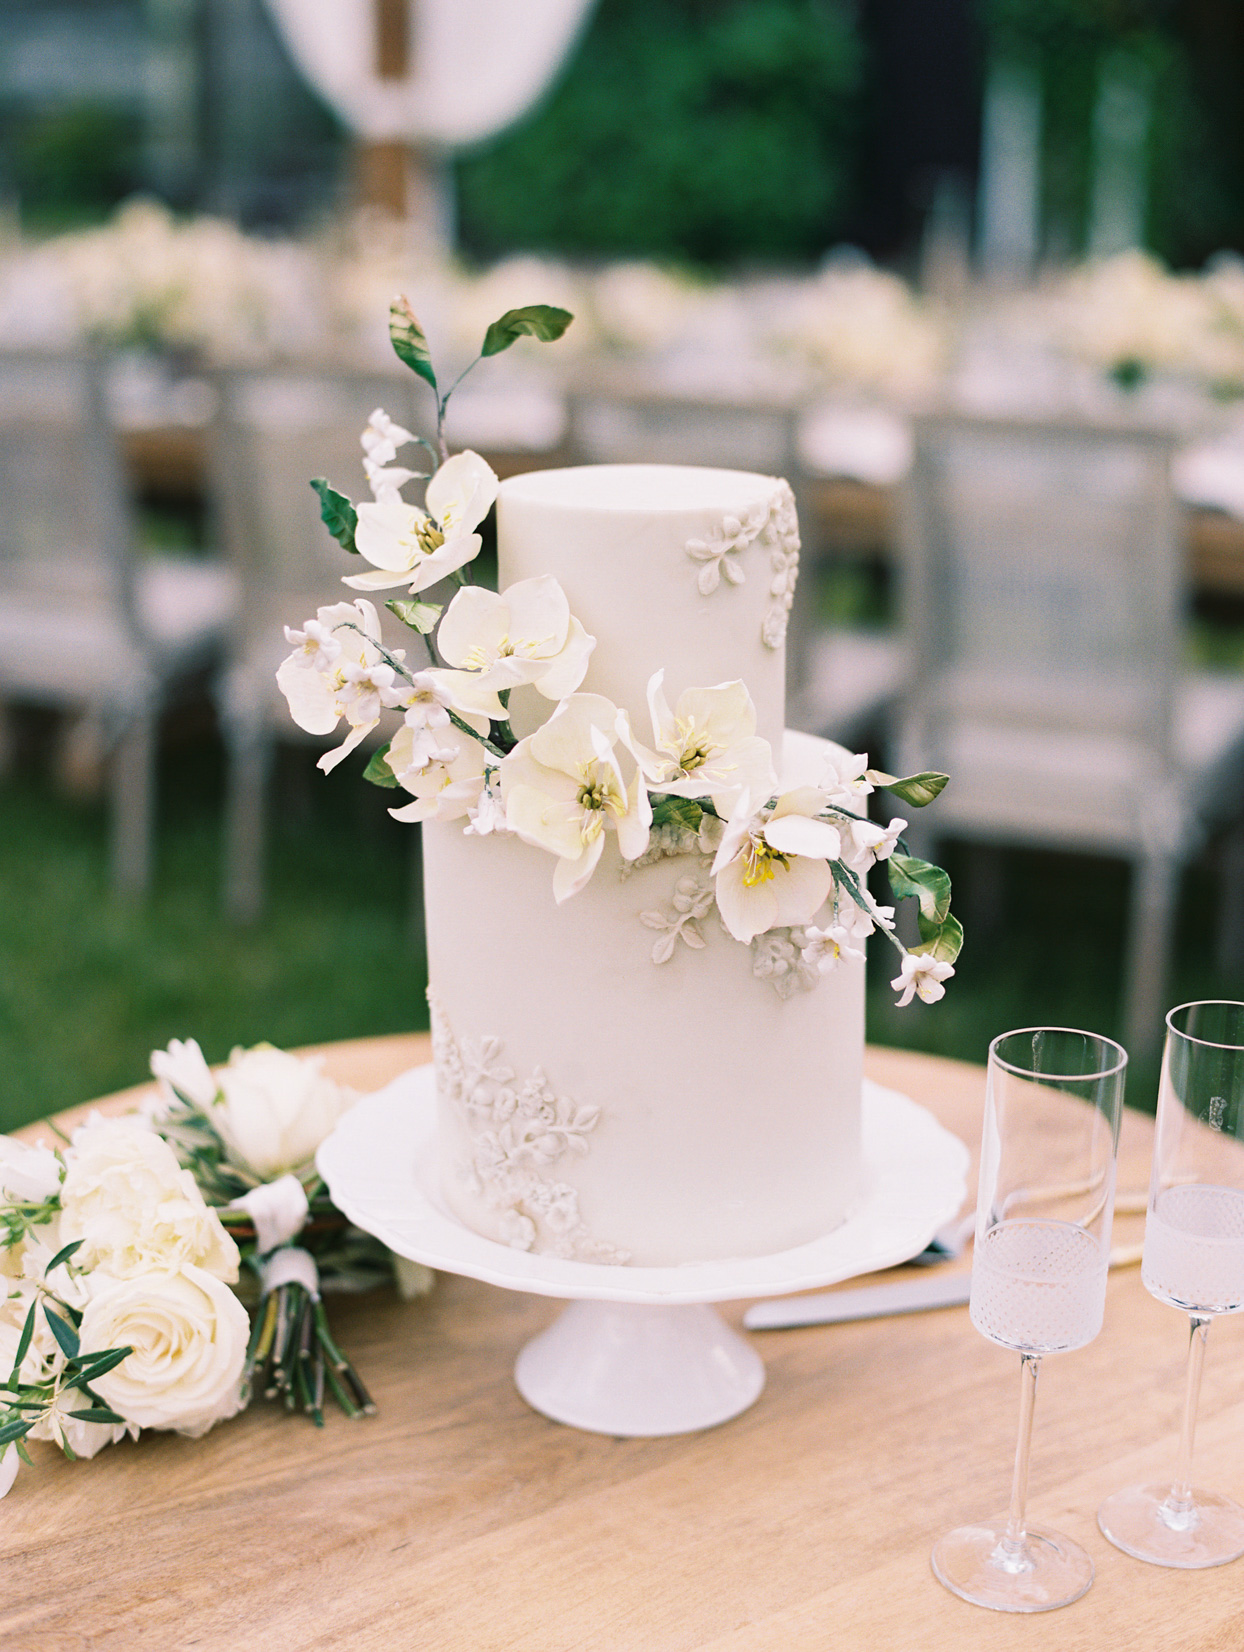 two tiered white frosted wedding cake with white flower accent